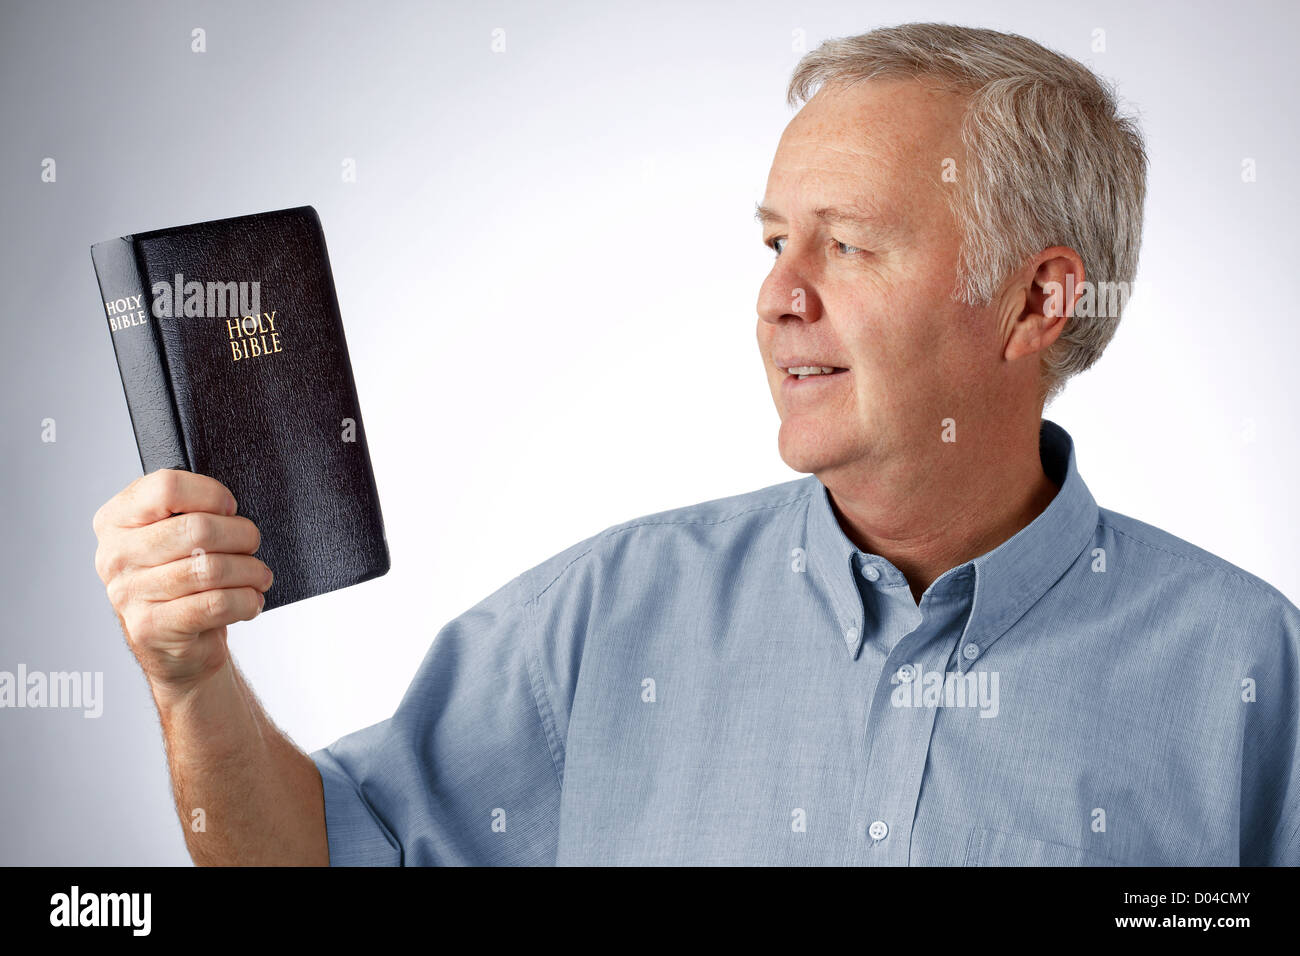 Man looking to the Bible in his hand (Open my eyes that I may see wonderful things in your law Psalm 119.18) - Stock Image